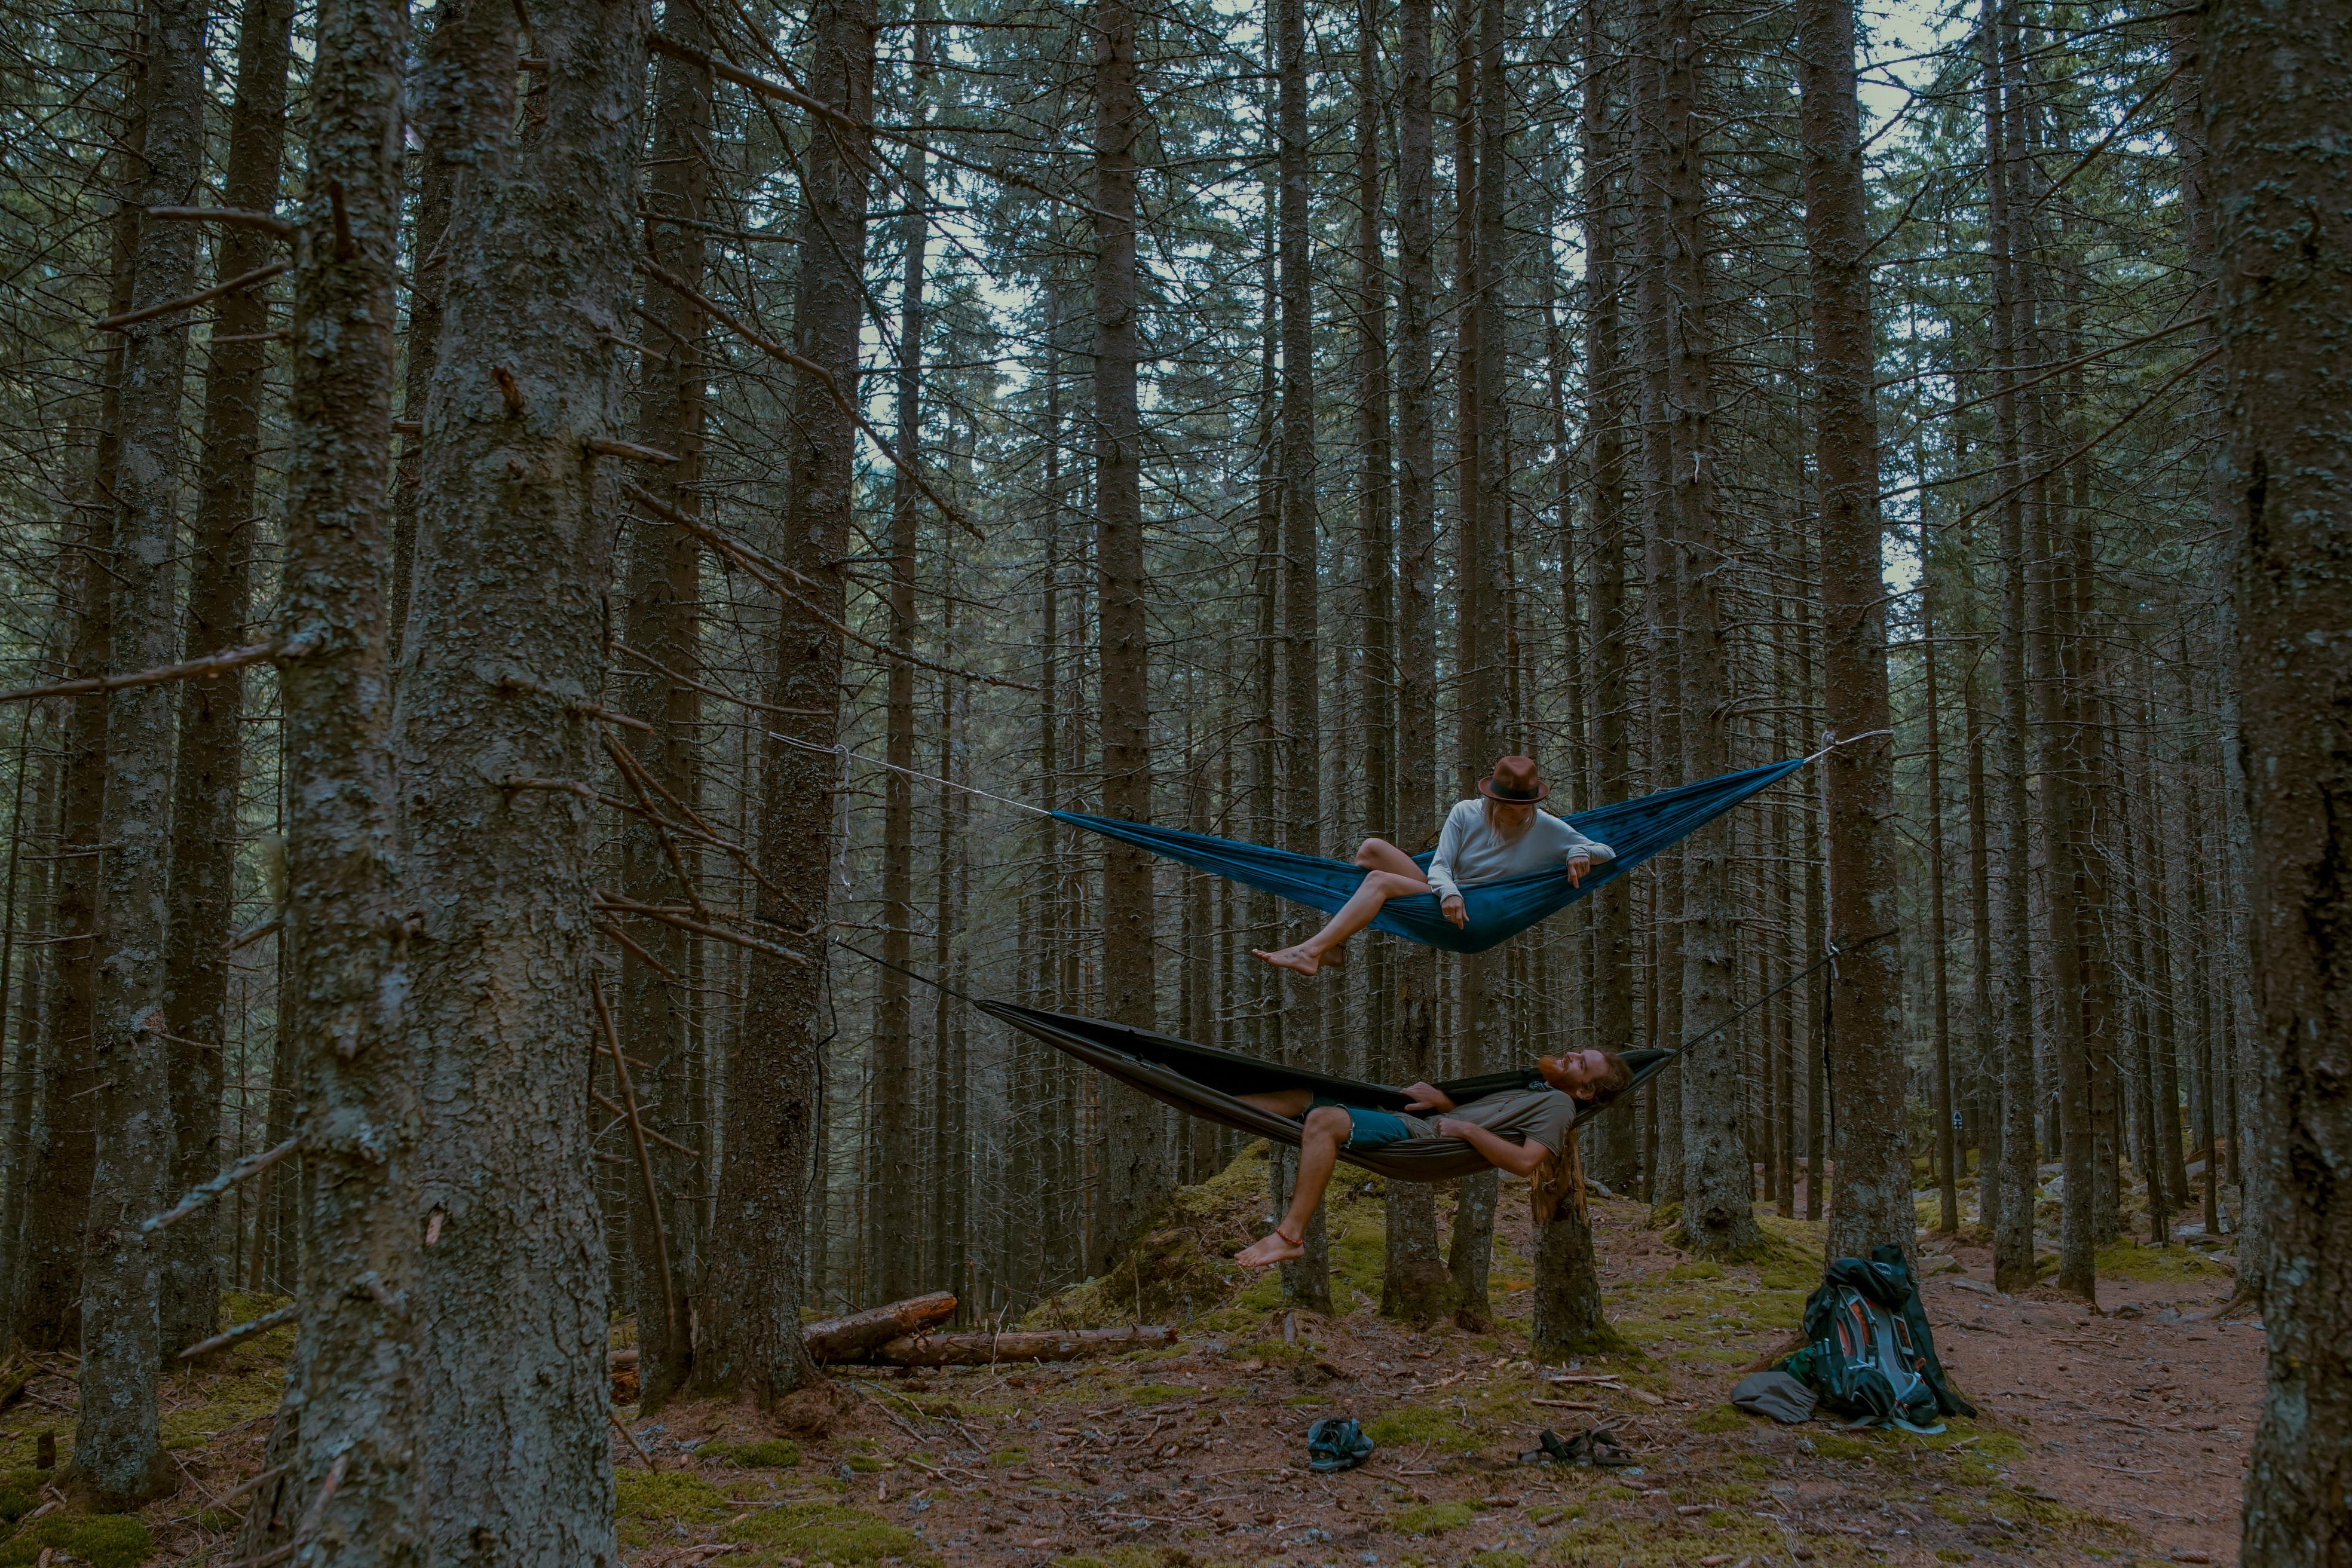 man and woman on hammock in between forest